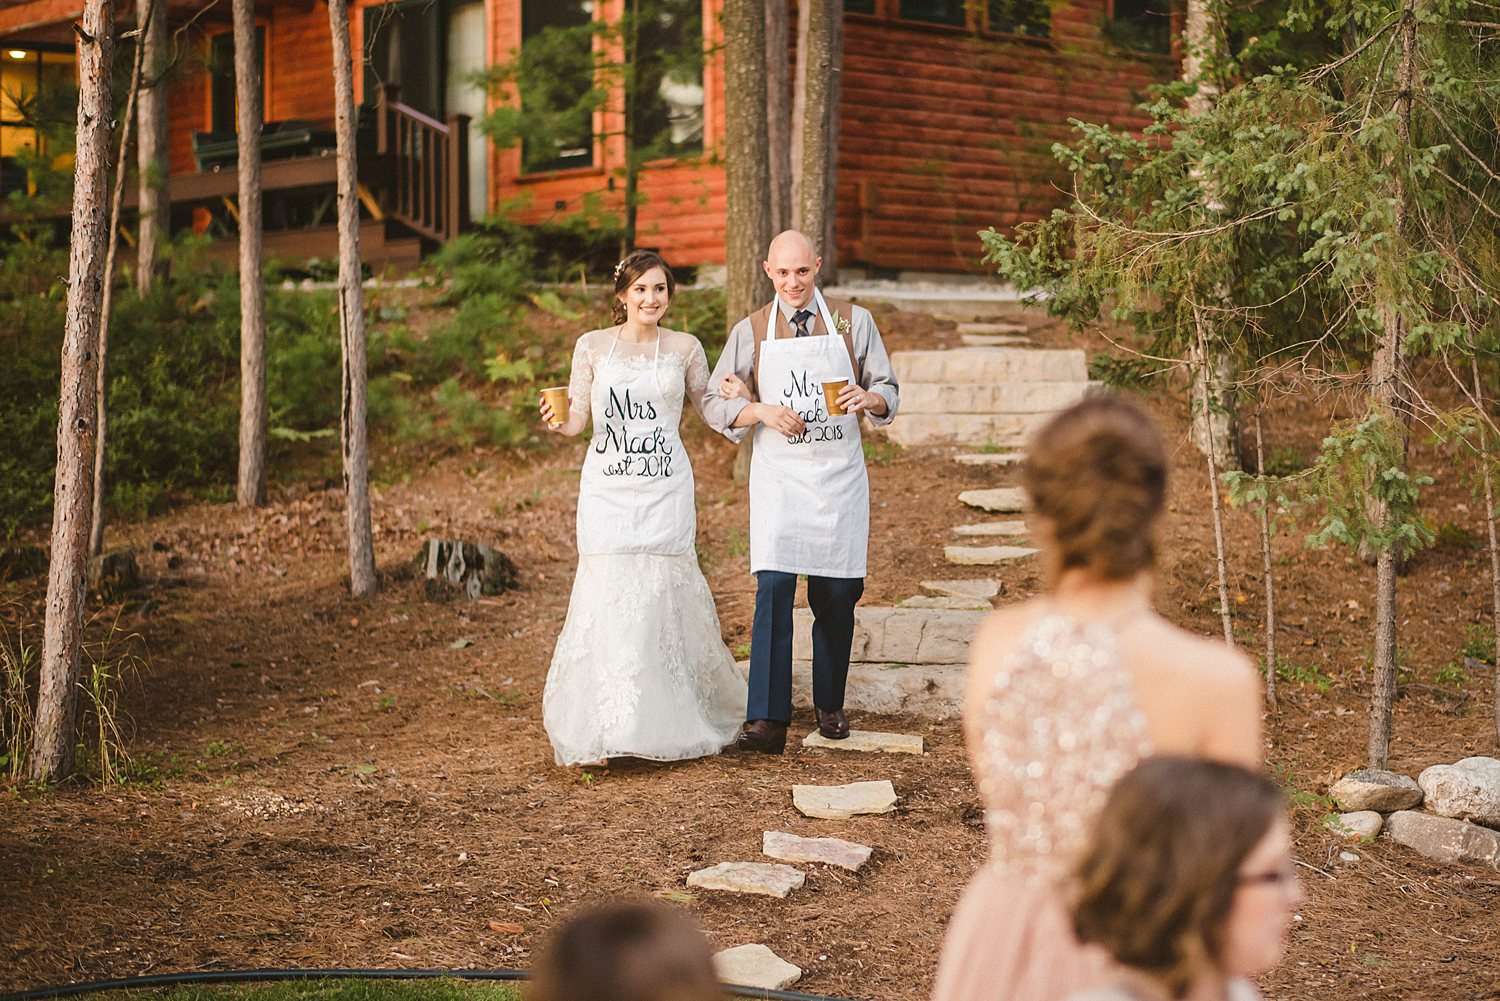 Northern Michigan Nature Backyard Elopement Intimate Wedding 133.jpg